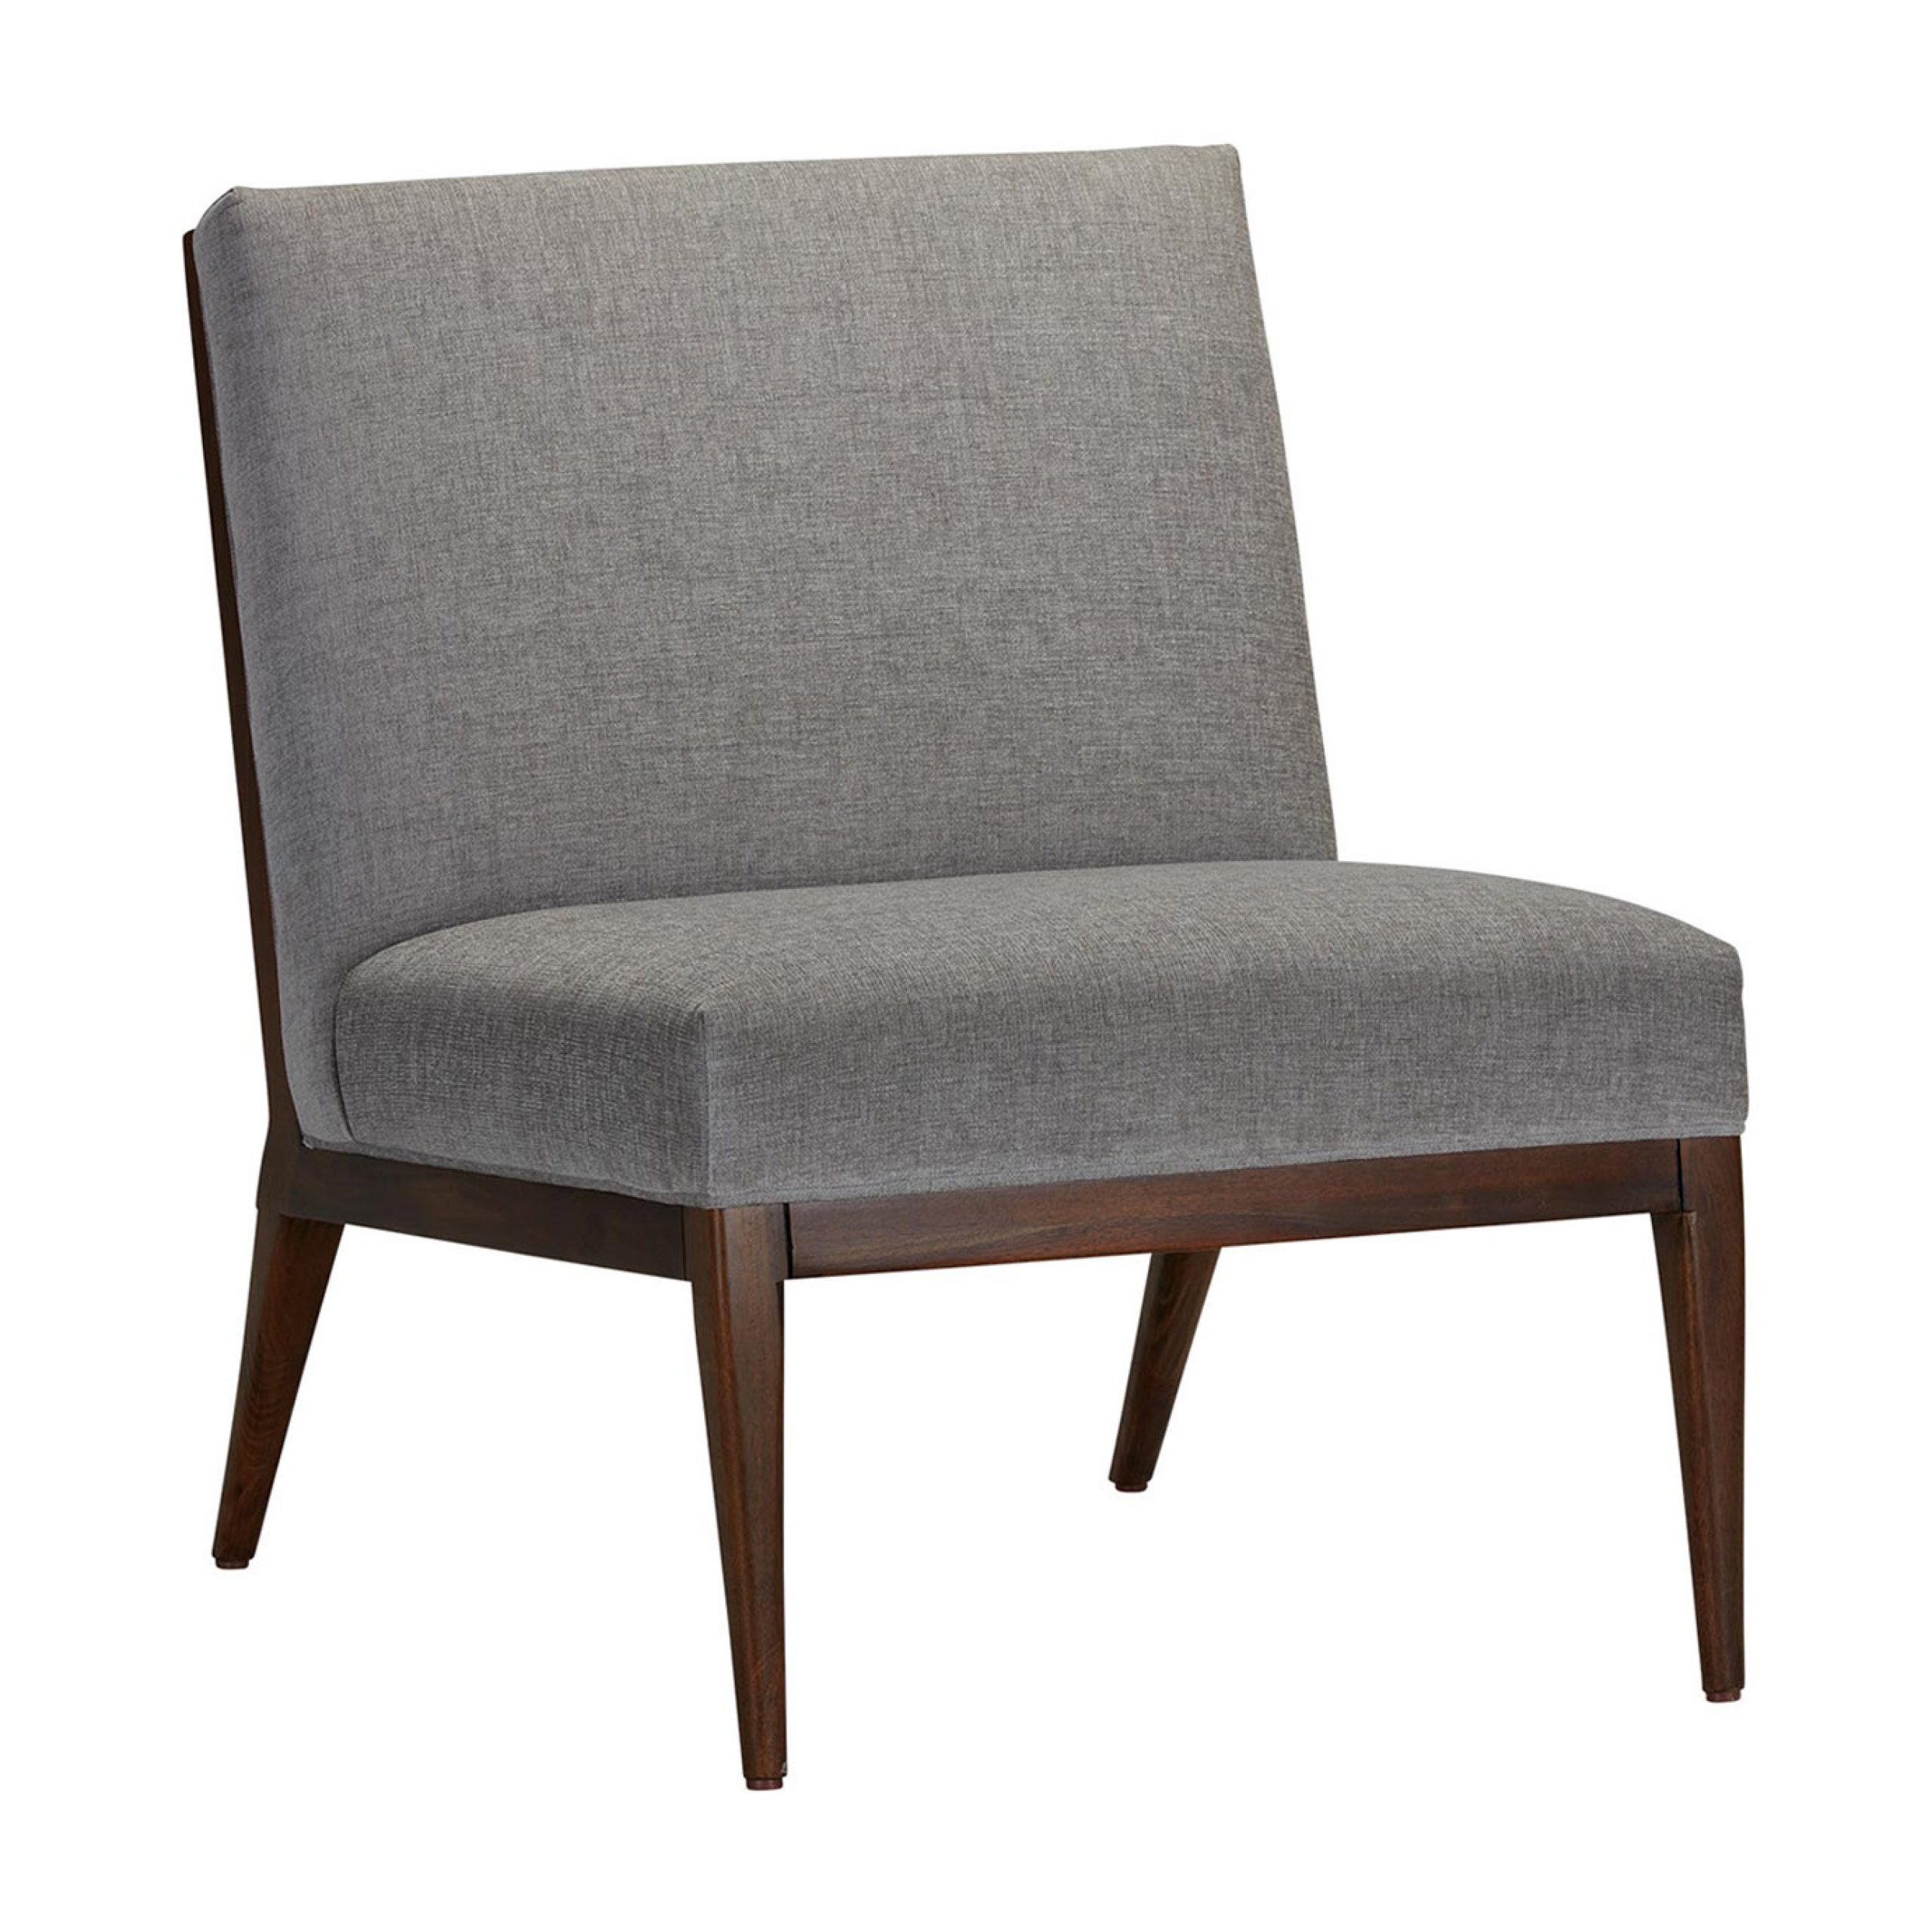 River Slipper Chair—Upholstered And Danish Inspired | Ethan Throughout Armless Upholstered Slipper Chairs (View 10 of 15)